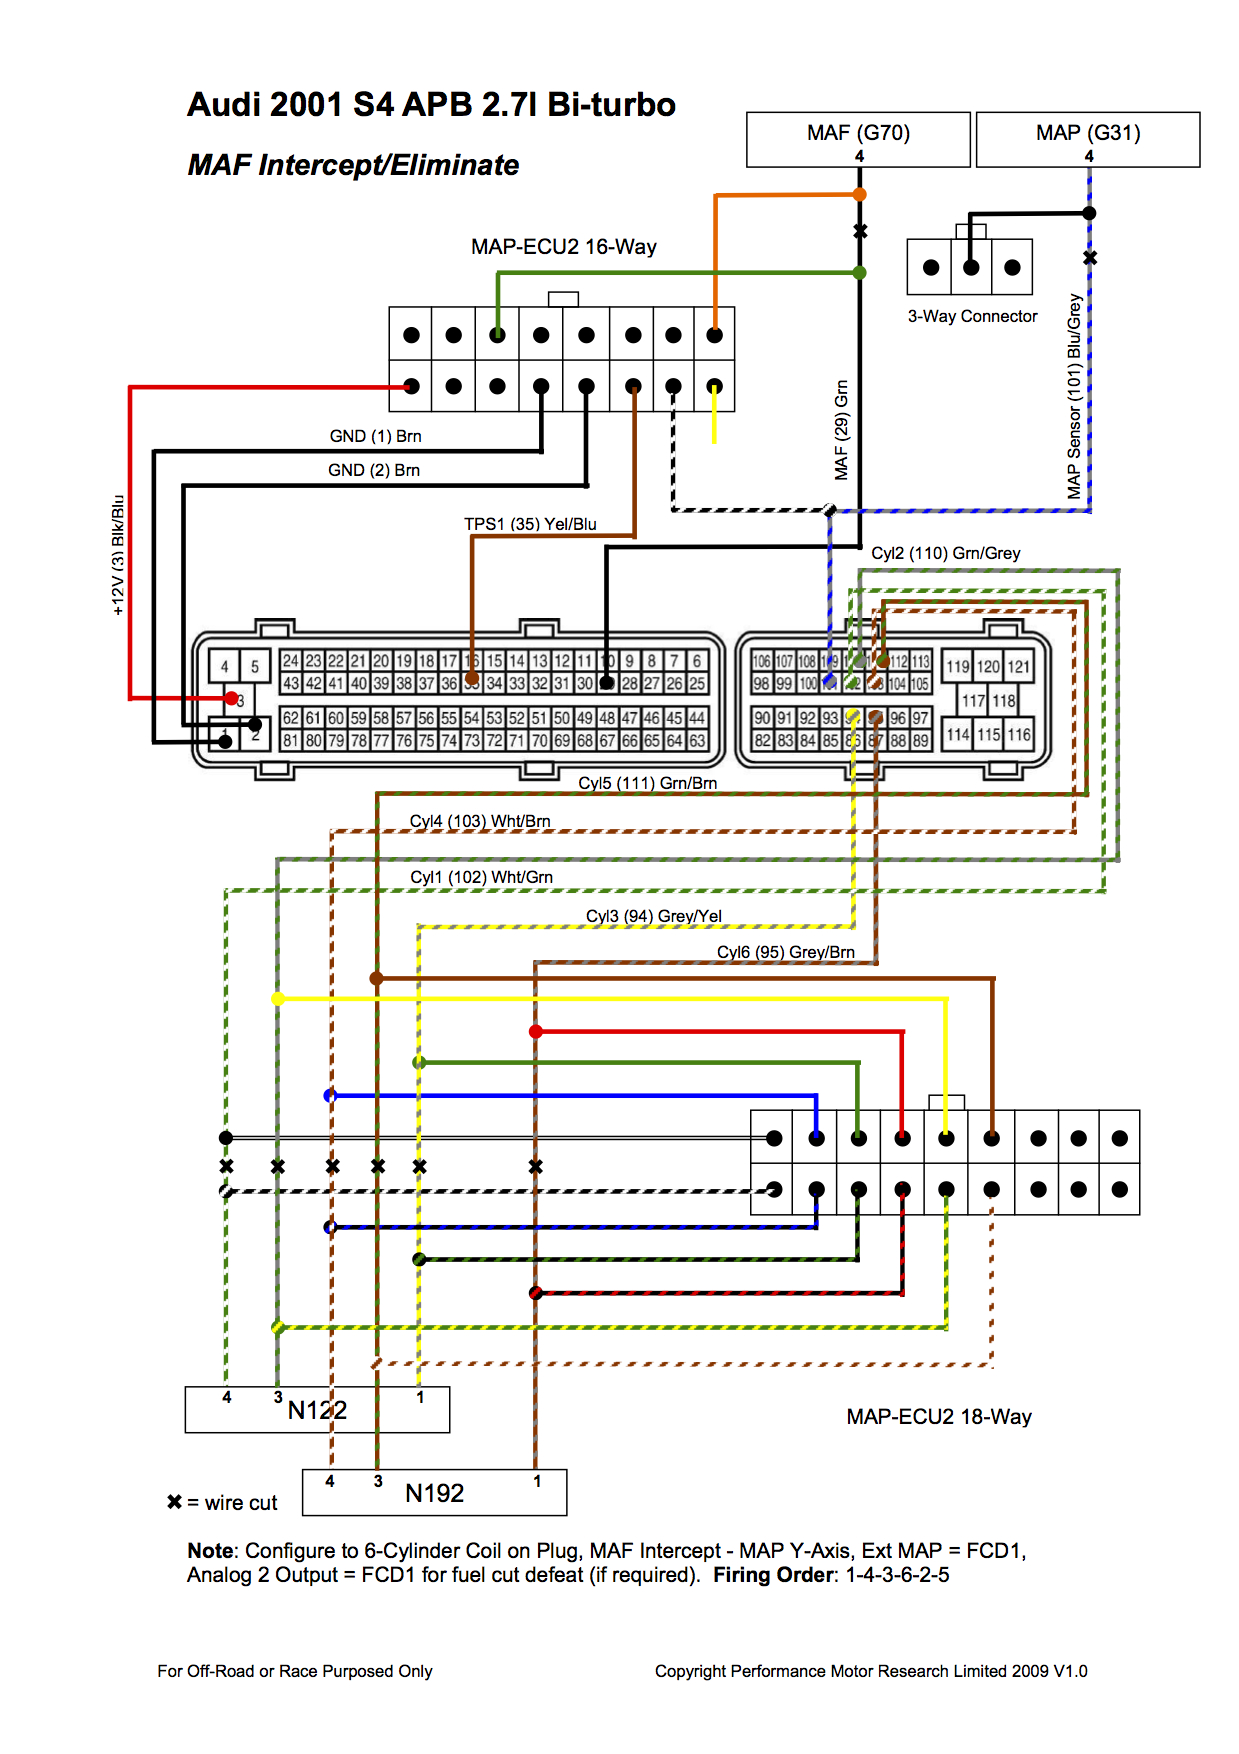 wiring schematic for 1992 toyota corolla schematic wiring diagram1992 toyota camry stereo wiring diagram z3 wiring library diagram ford fusion schematic wiring diagram for